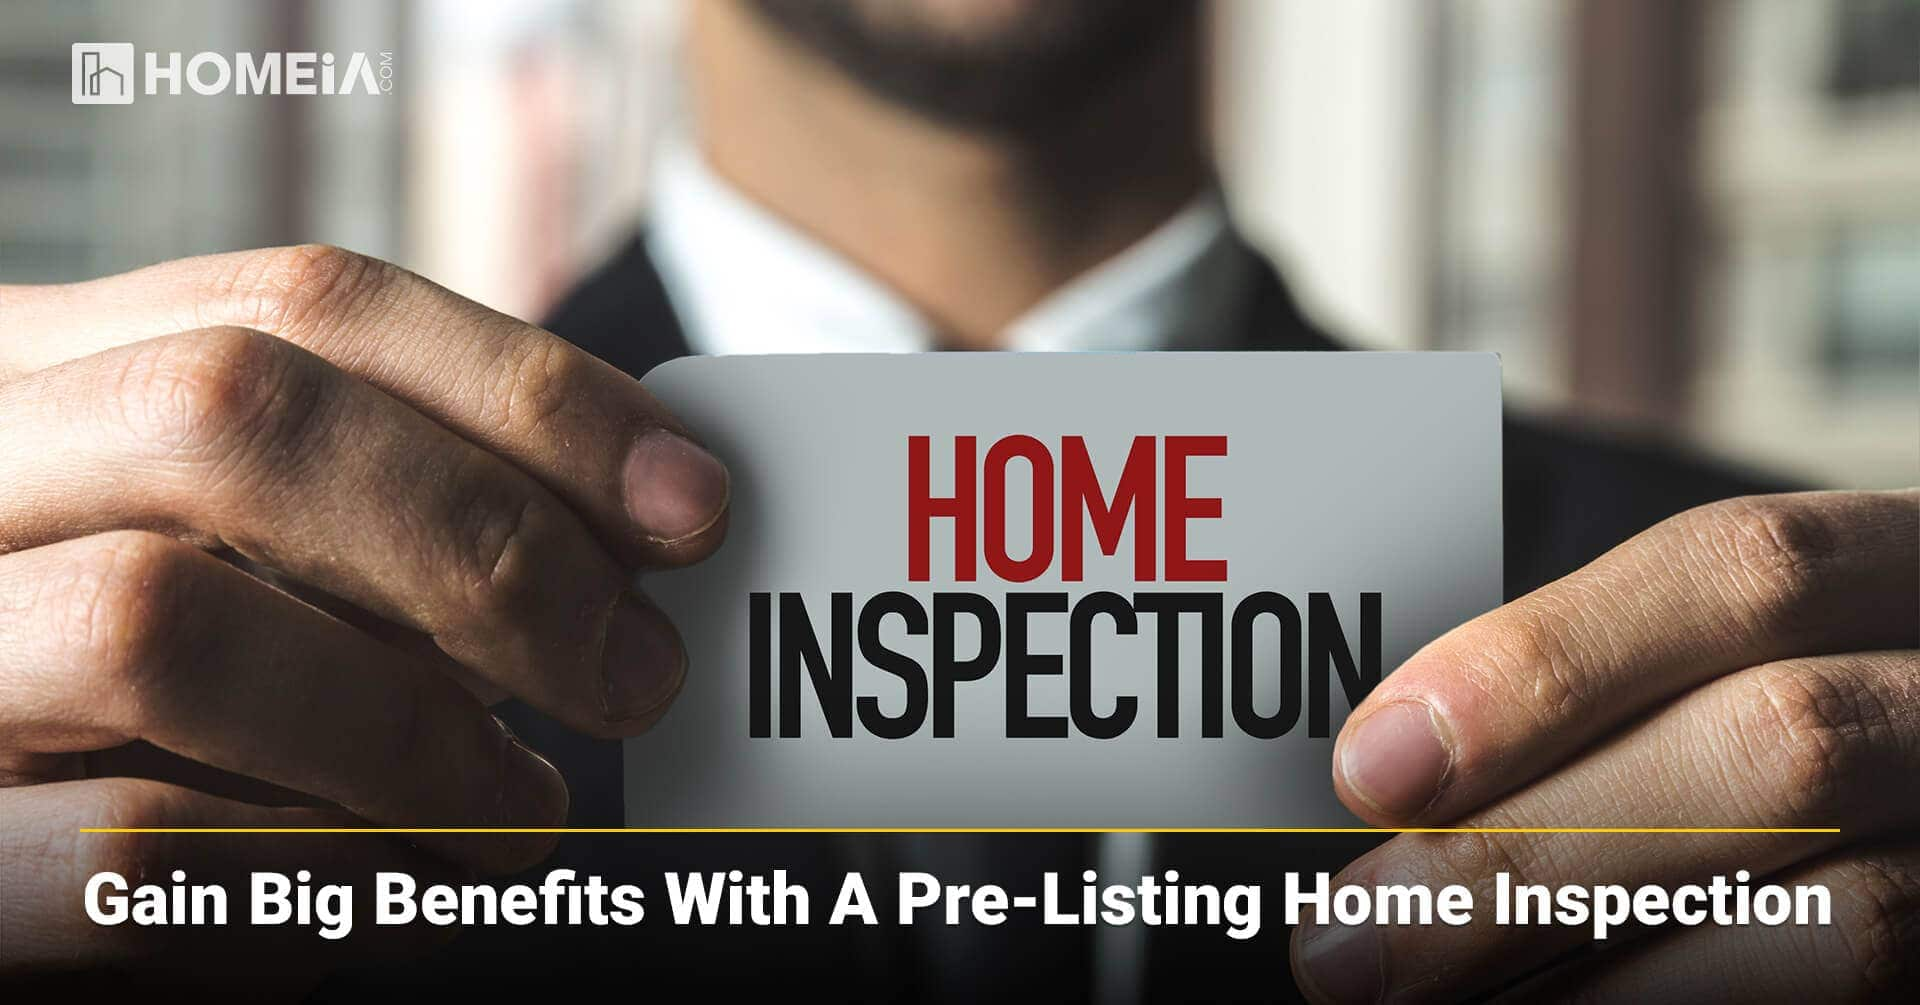 Gain Big Benefits with a Pre-Listing Home Inspection